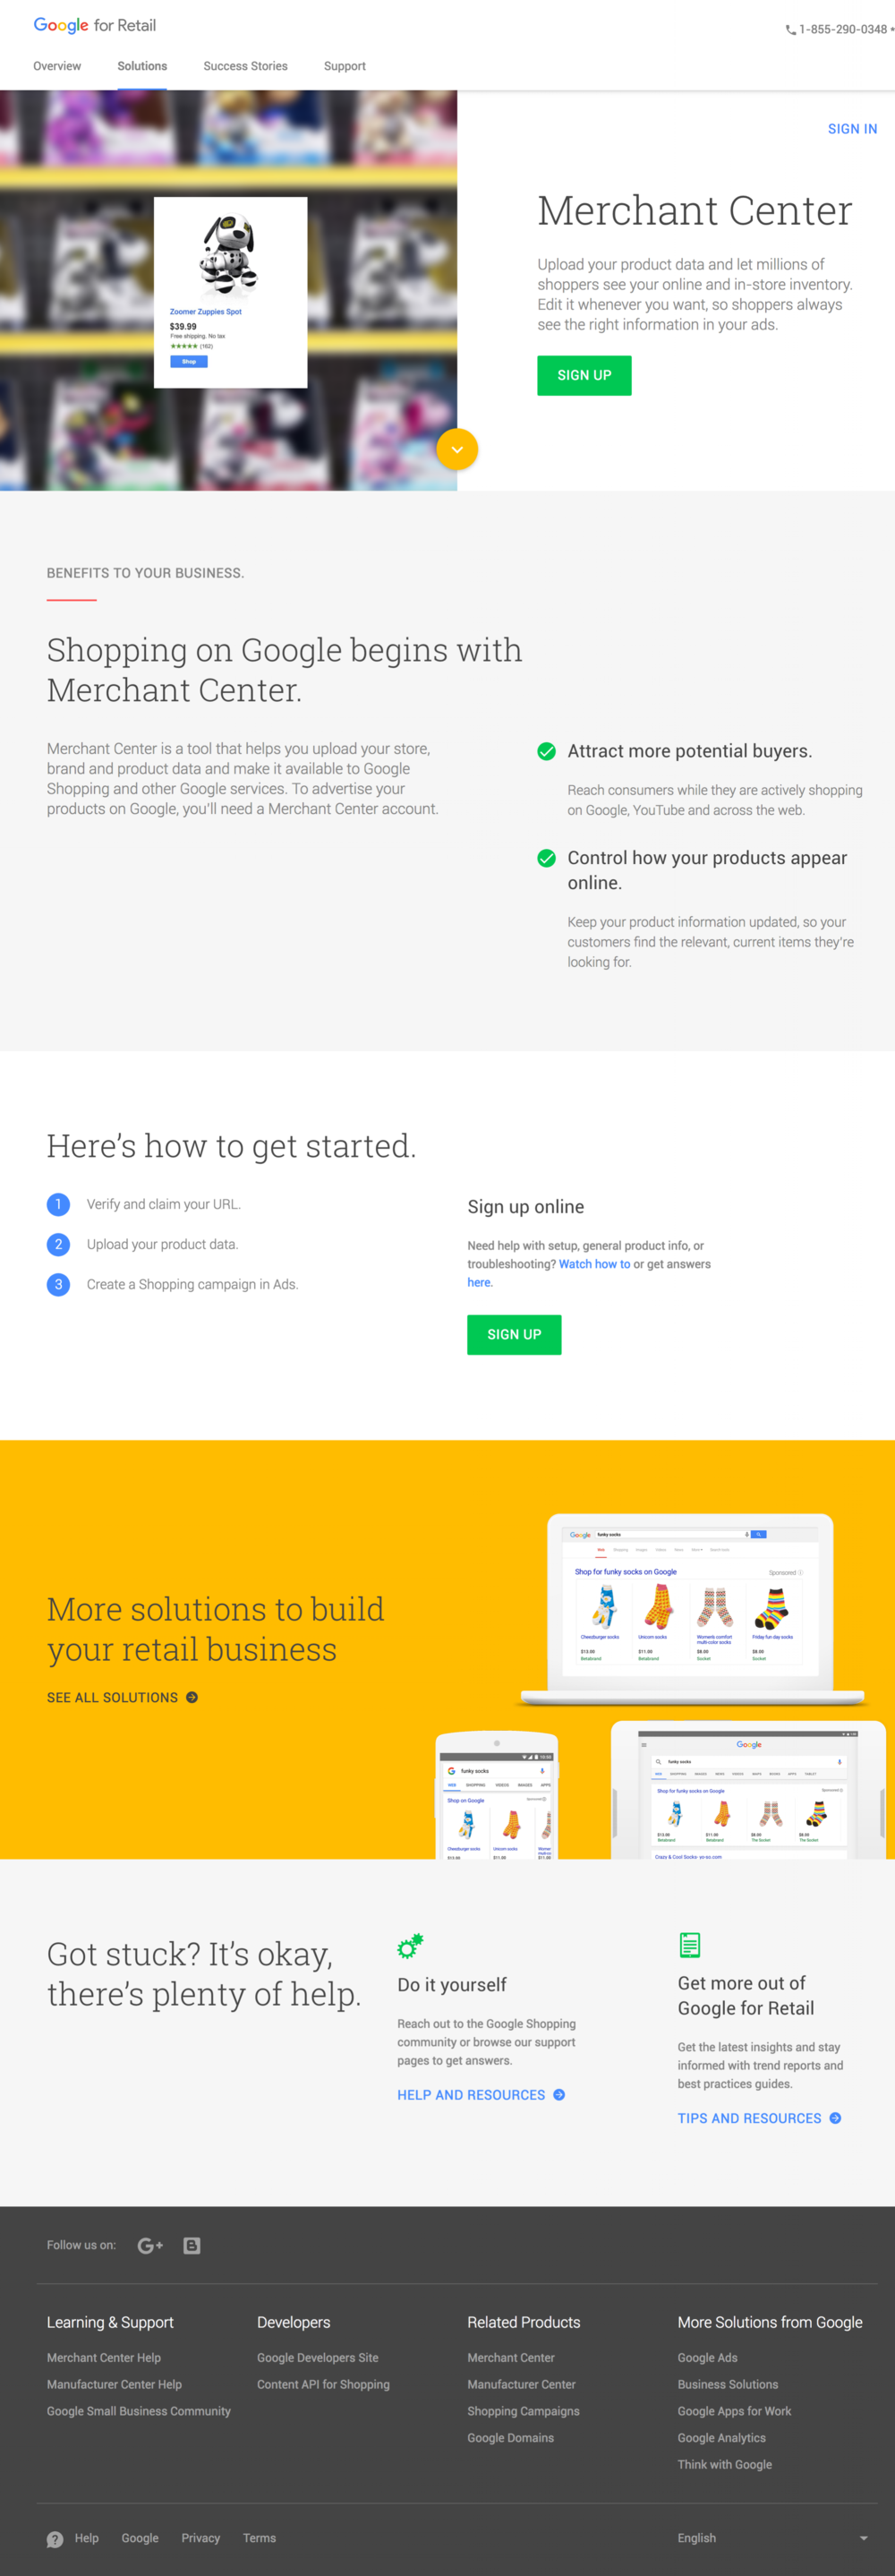 screencapture-google-retail-solutions-merchant-center-2018-10-12-16_07_43.png